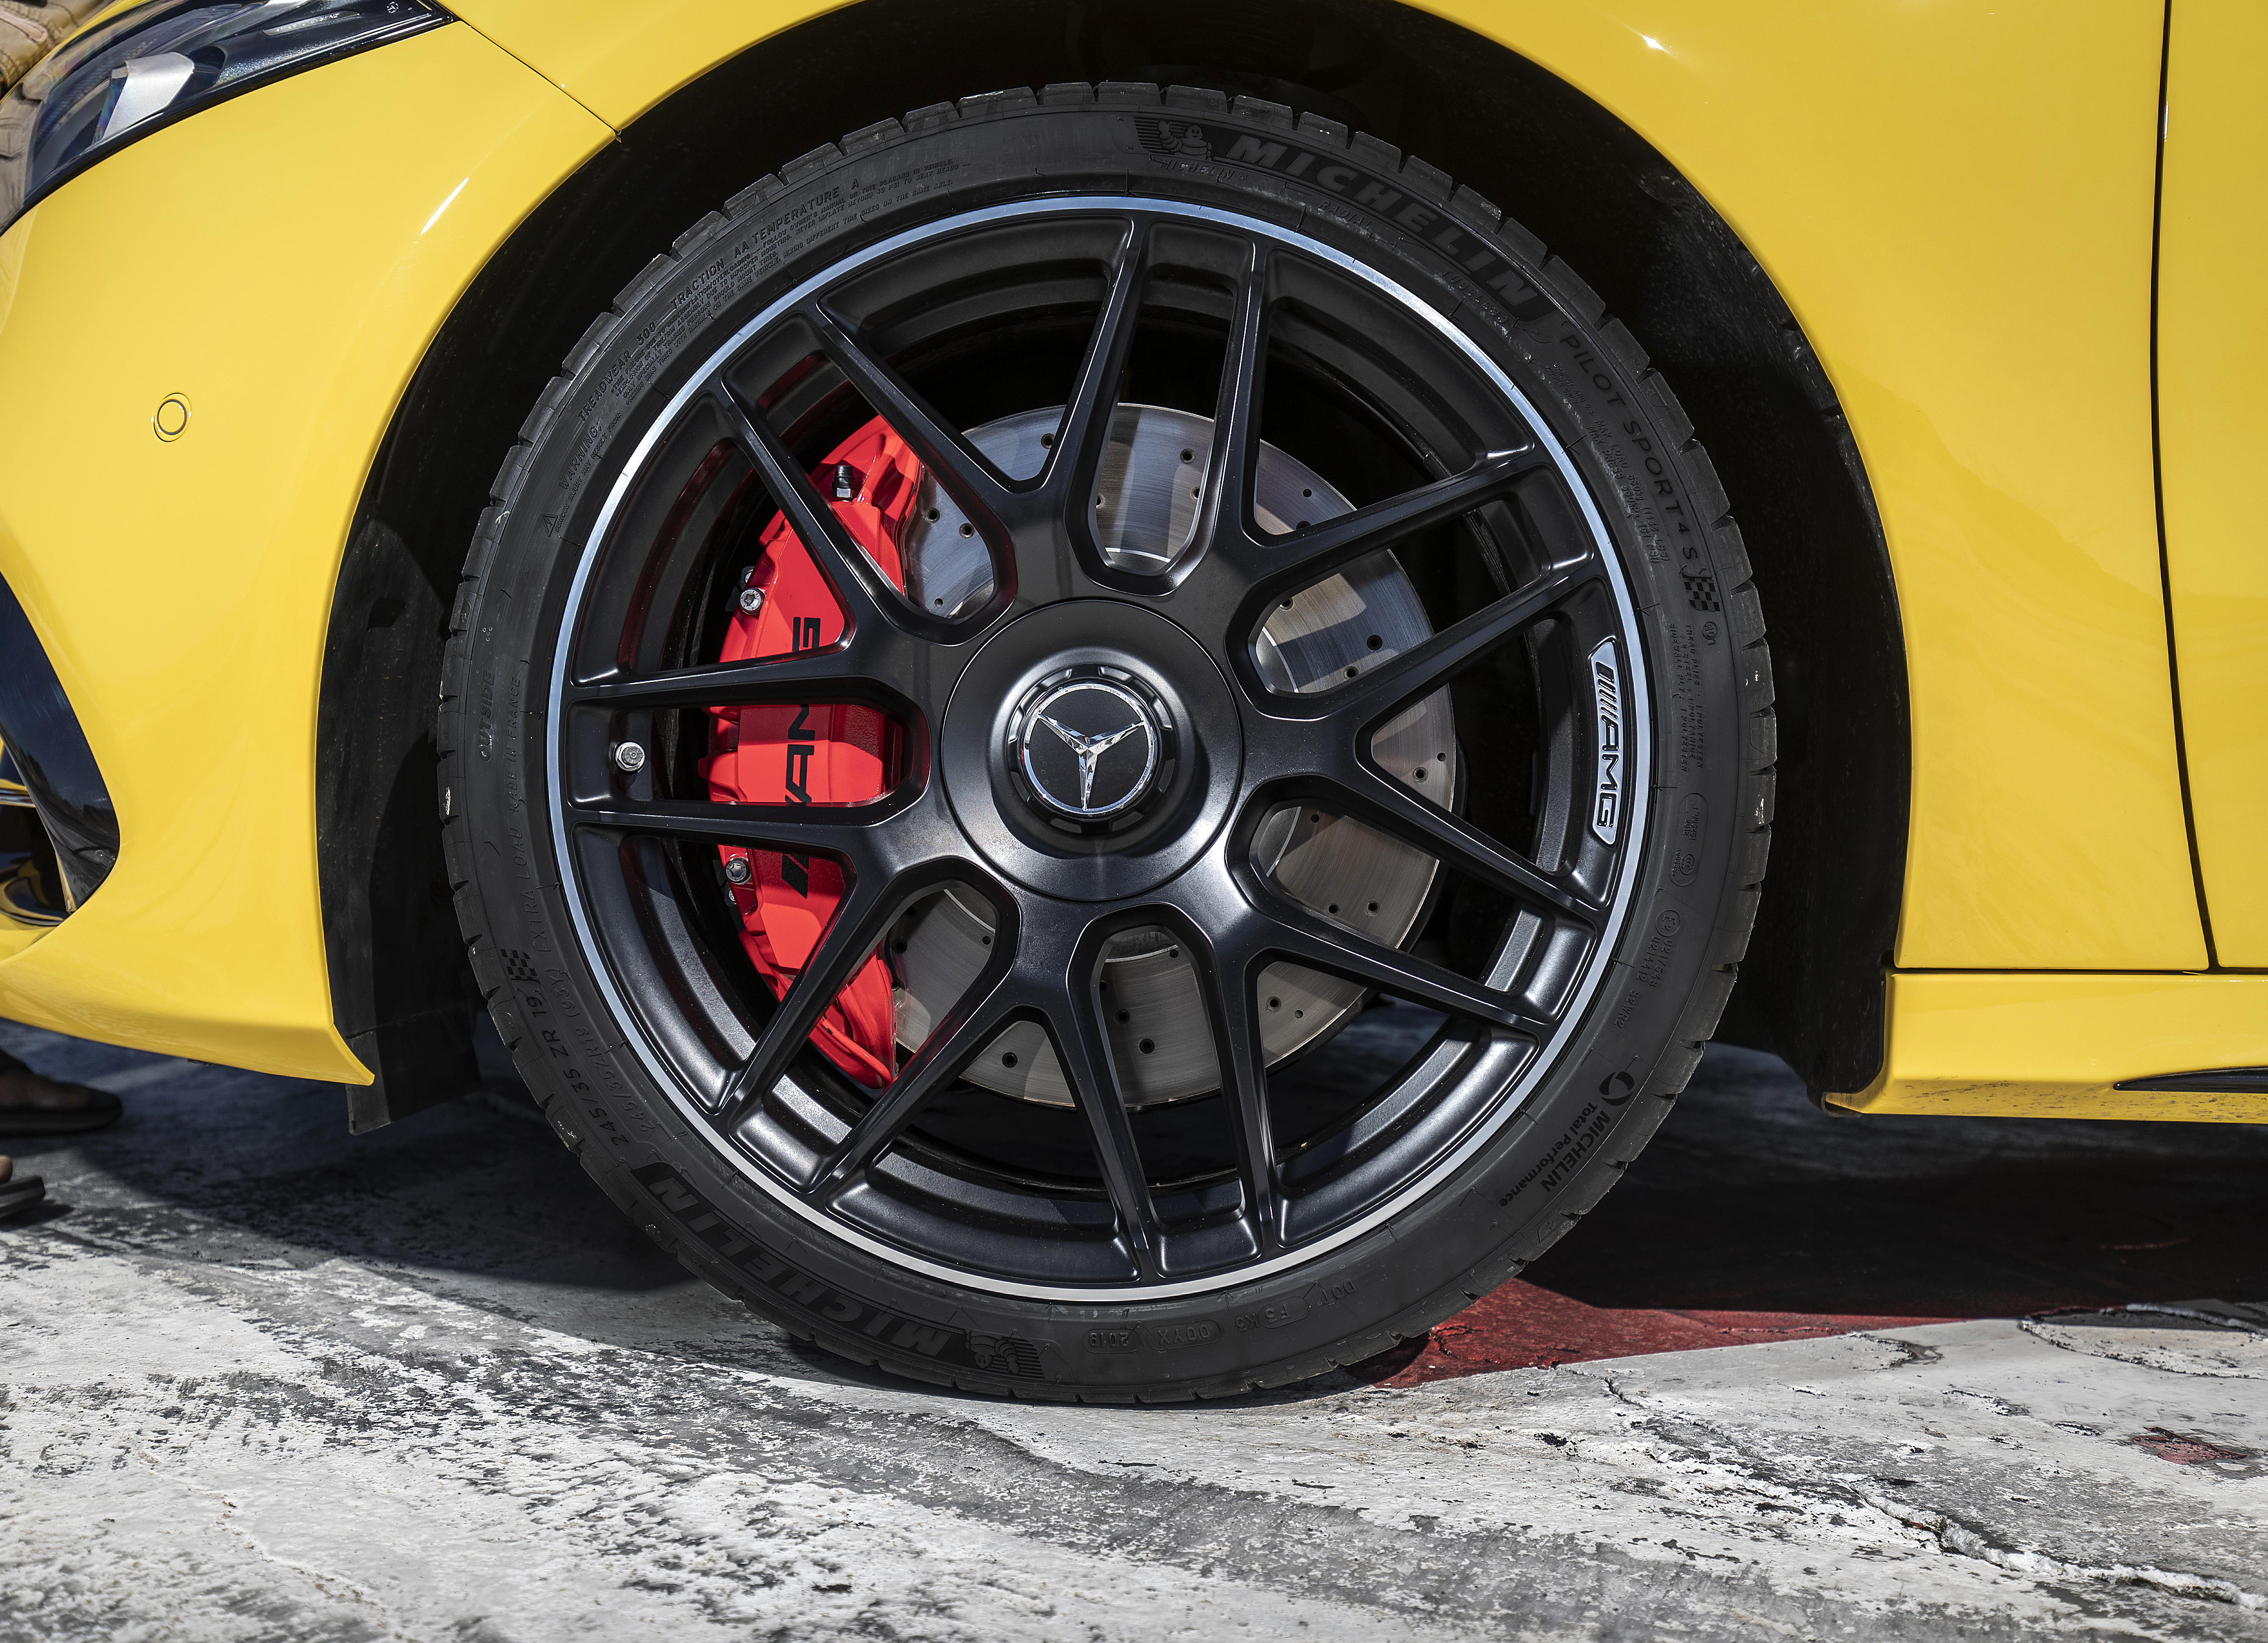 Large alloy wheels house well-sized brakes